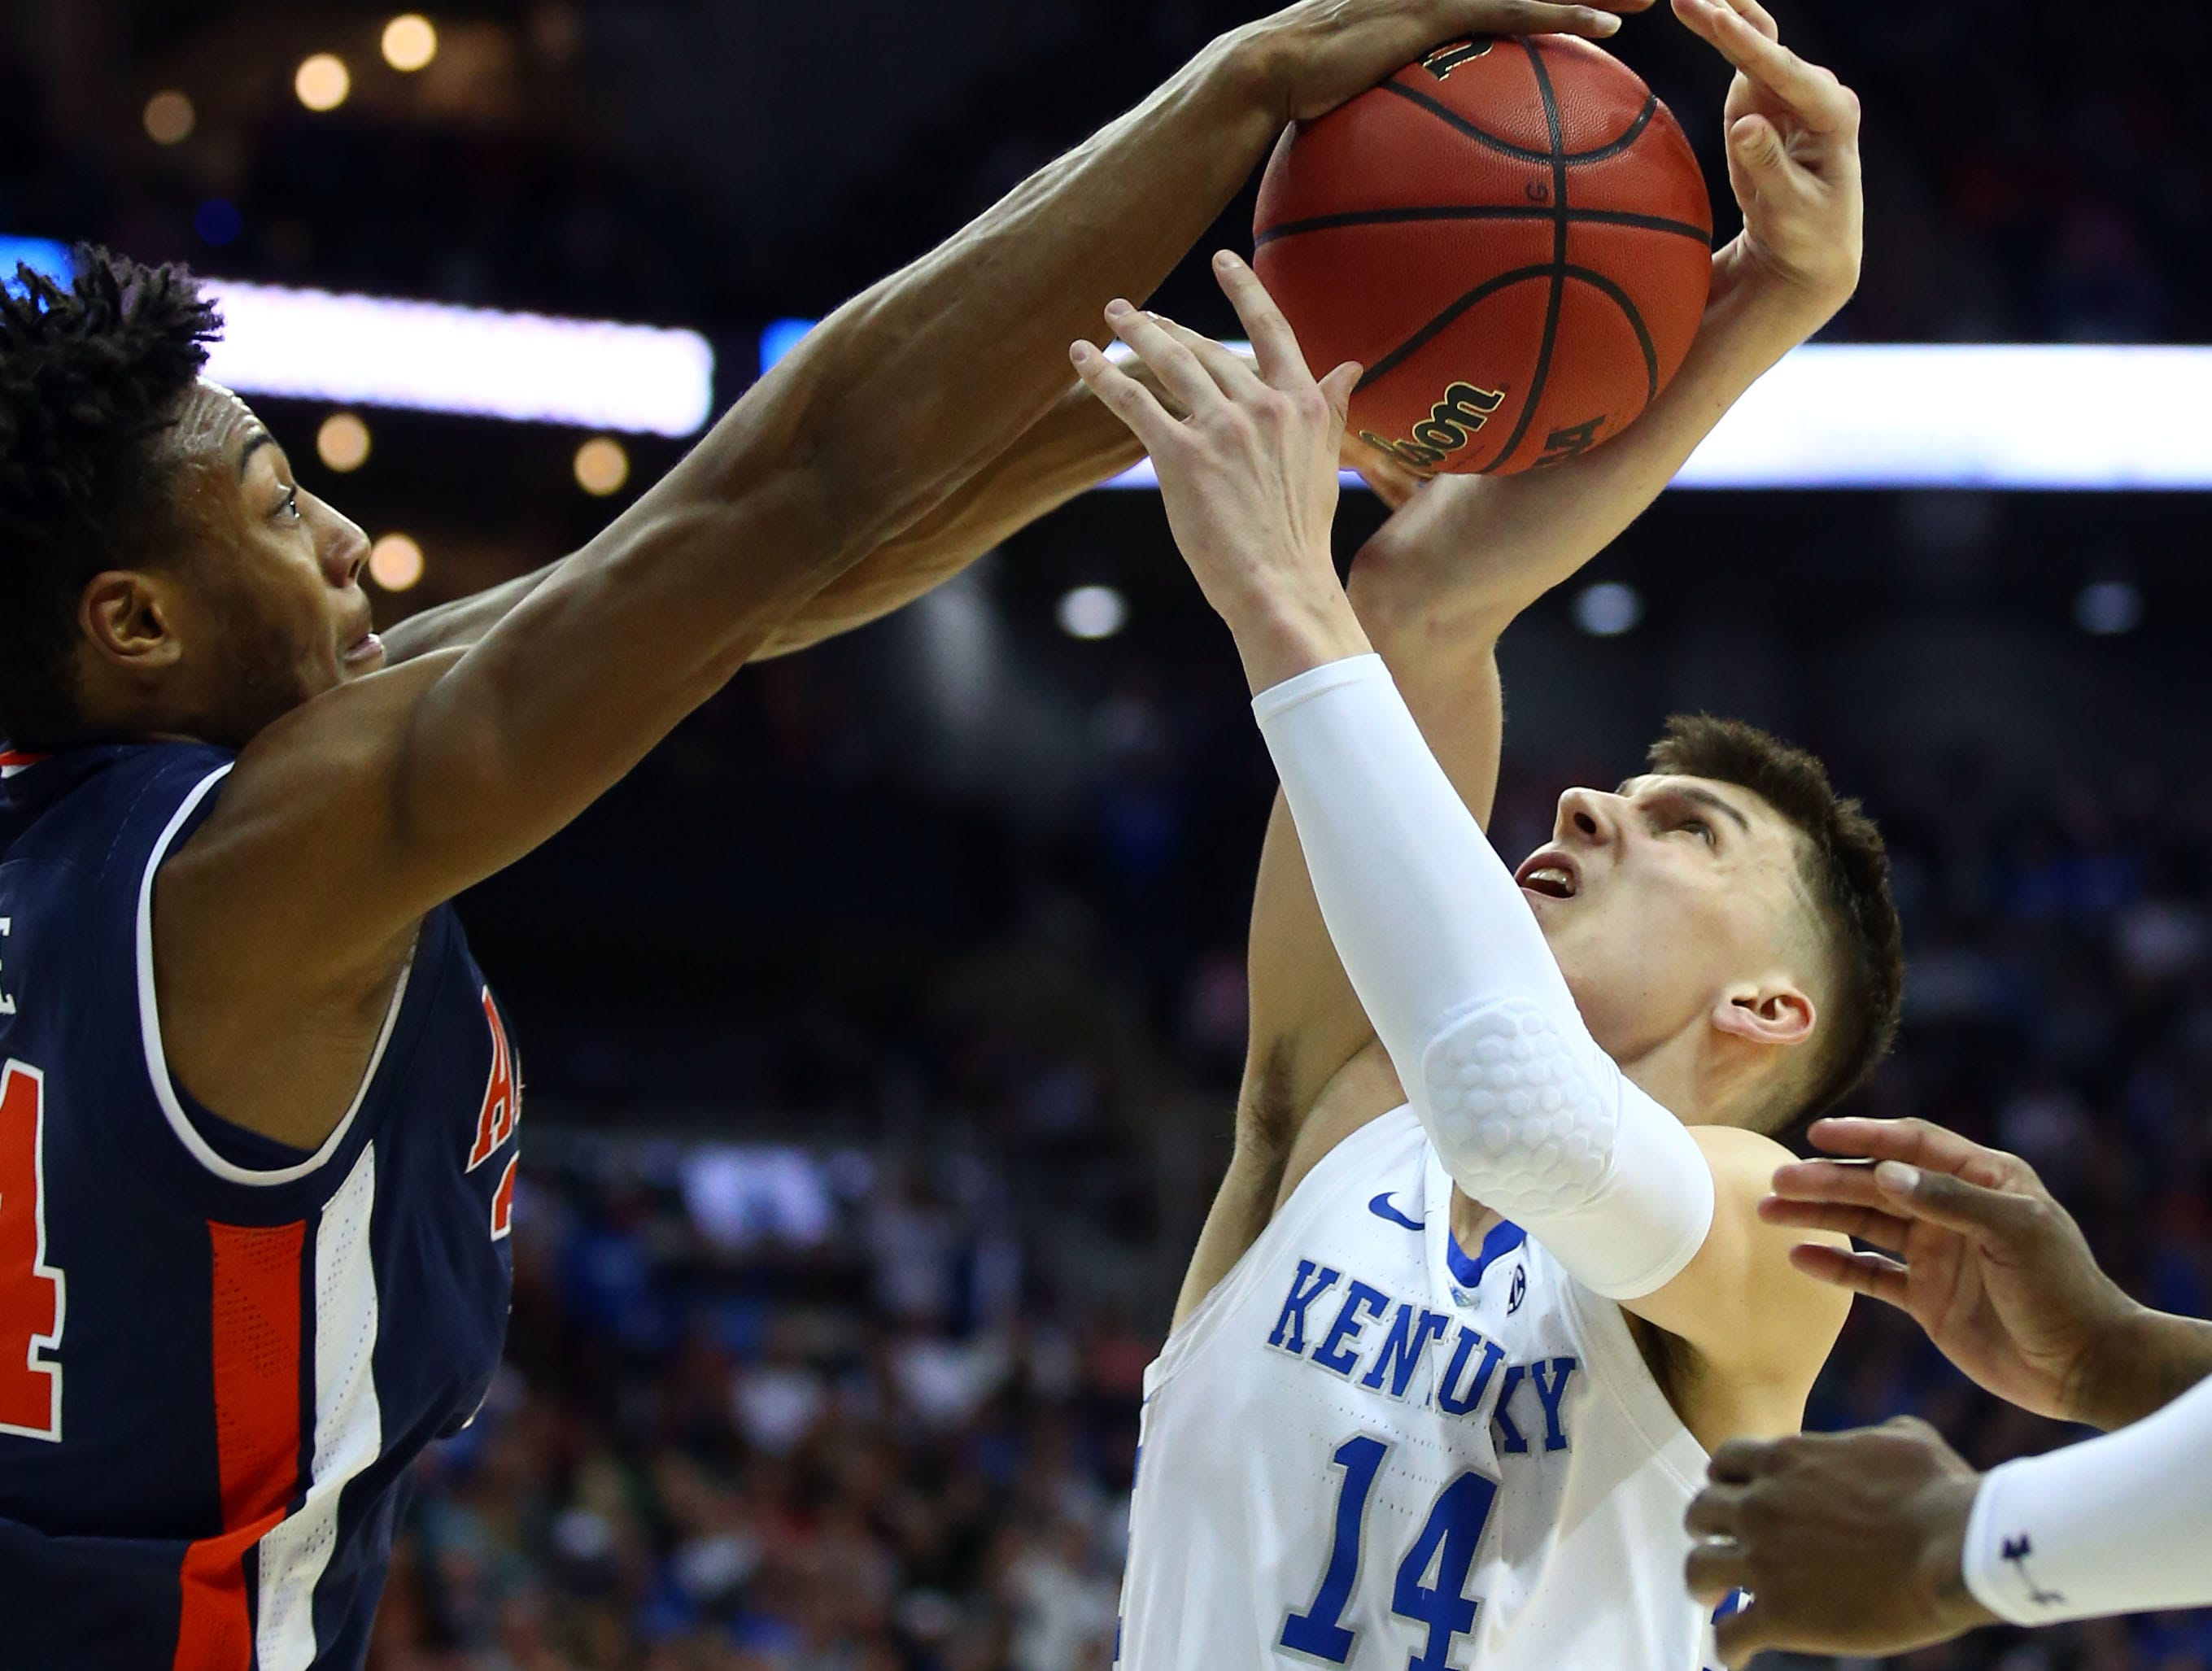 Mar 31, 2019; Kansas City, MO, United States; Auburn Tigers forward Anfernee McLemore (24) defends against Kentucky Wildcats guard Tyler Herro (14) during the second half in the championship game of the midwest regional of the 2019 NCAA Tournament at Sprint Center. Mandatory Credit: Jay Biggerstaff-USA TODAY Sports